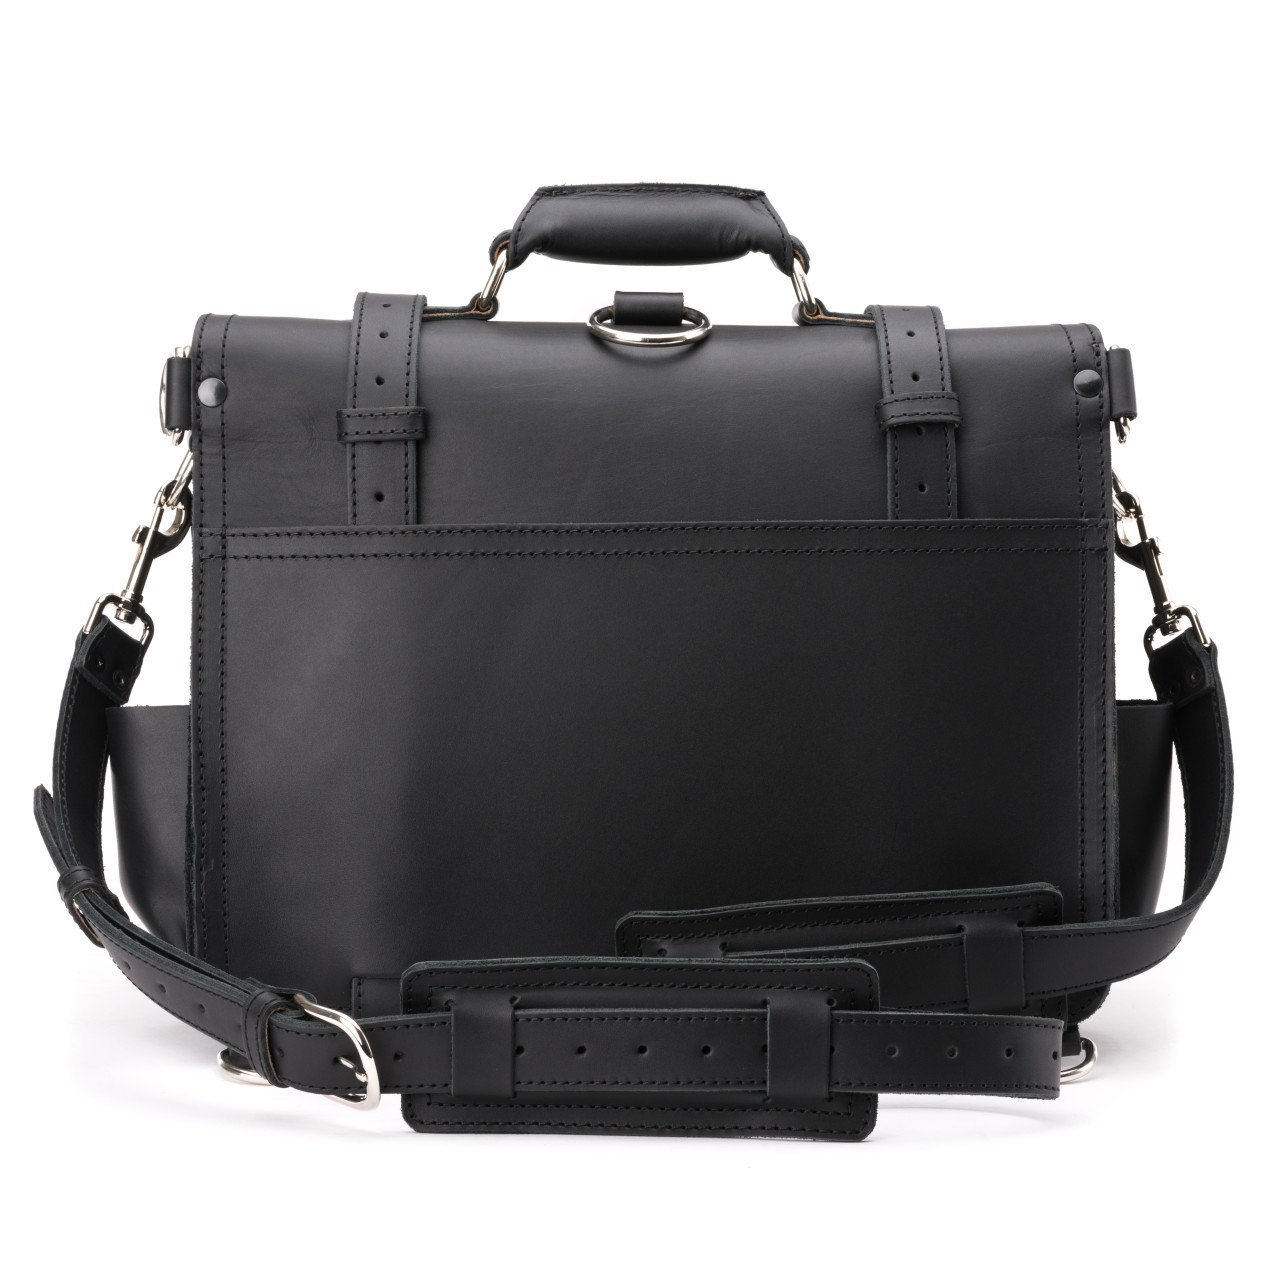 Classic Leather Briefcase The Original Full Grain Leather Briefcase For Men  Includes 100 Year Warranty  c261cbe280ff7